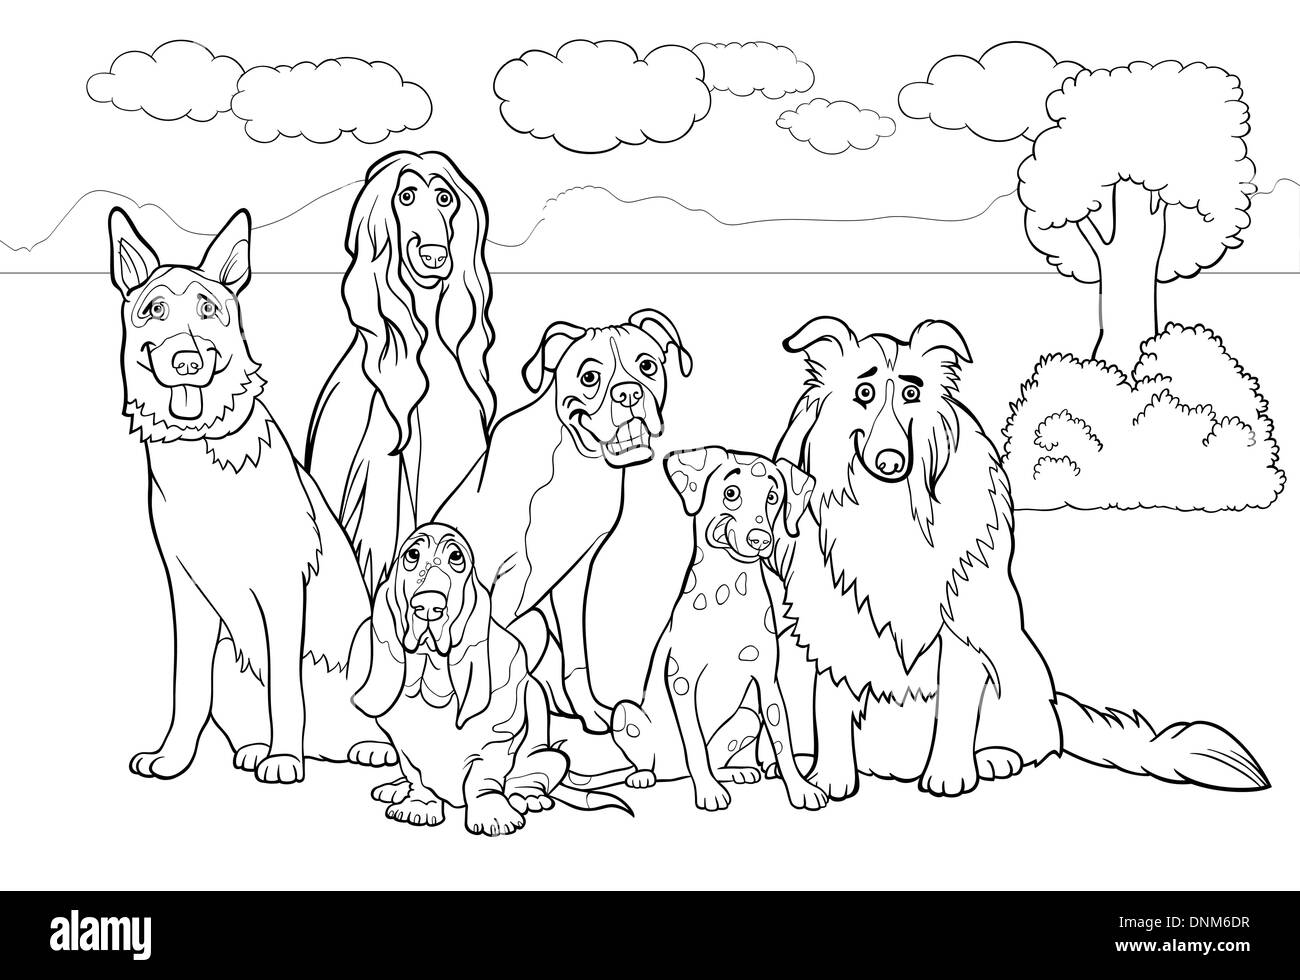 Black and White Cartoon Illustration of Cute Purebred Dogs or Puppies Group against Rural Landscape or Park Scene for Coloring B - Stock Vector